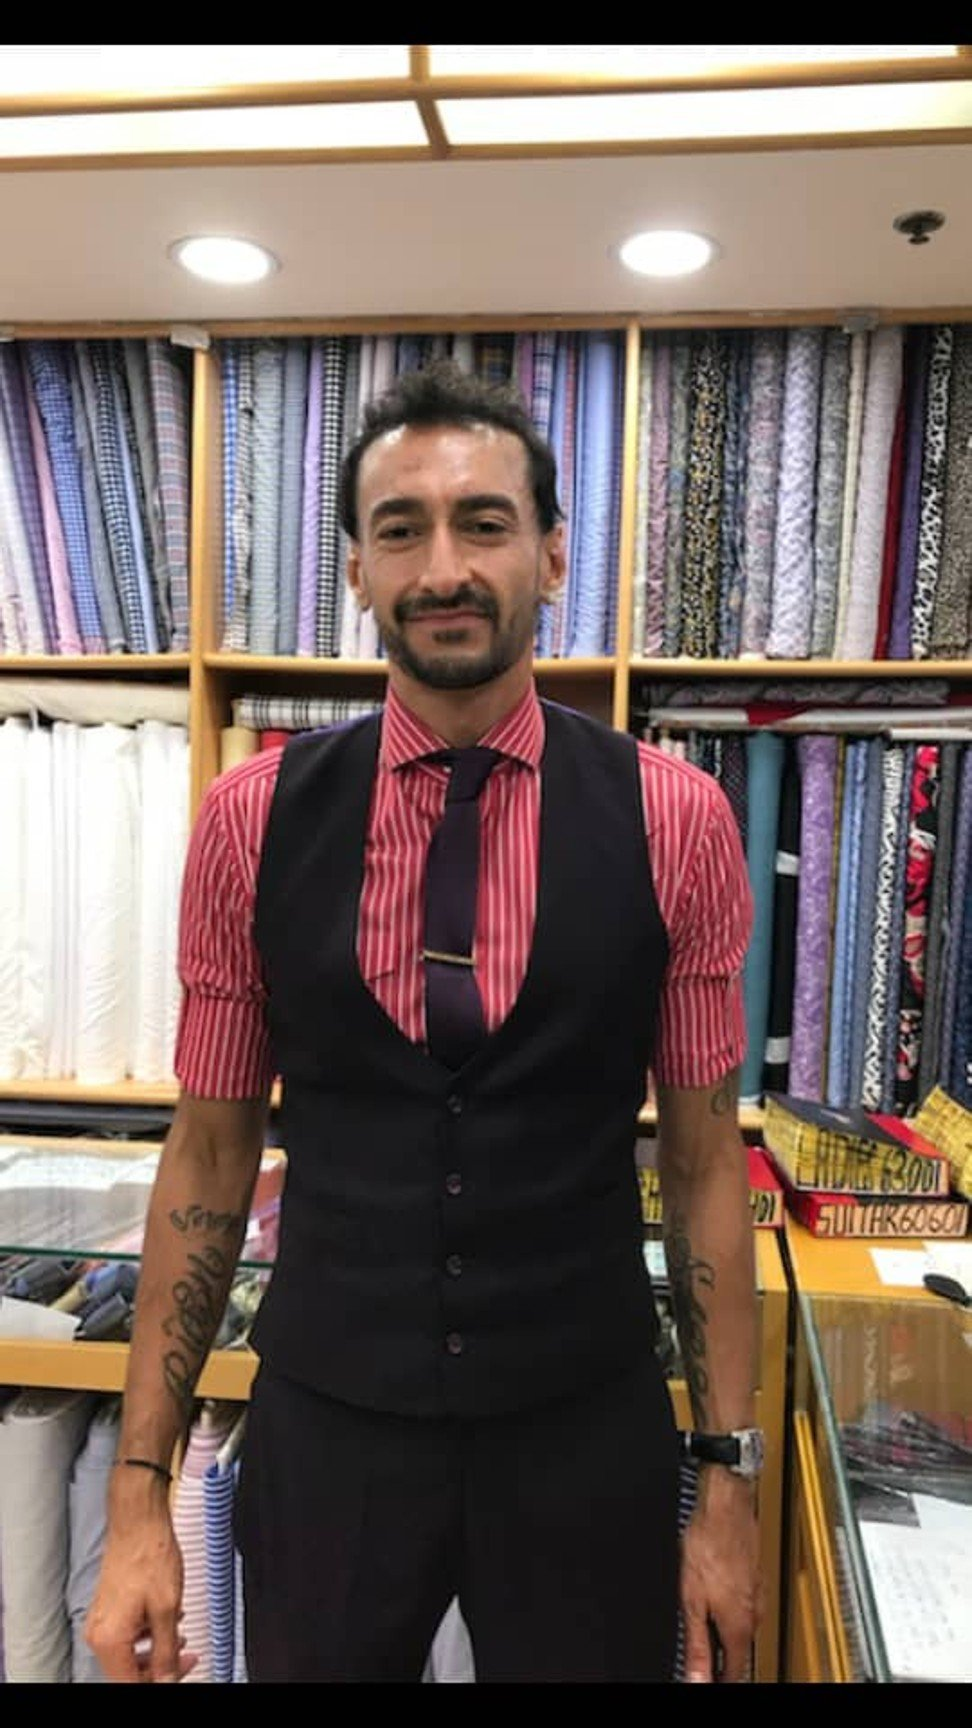 ae2d0f61c60 Fifa World Cup  Hong Kong s Sam s Tailor says Gareth Southgate s famous  waistcoat tells us he is sincere